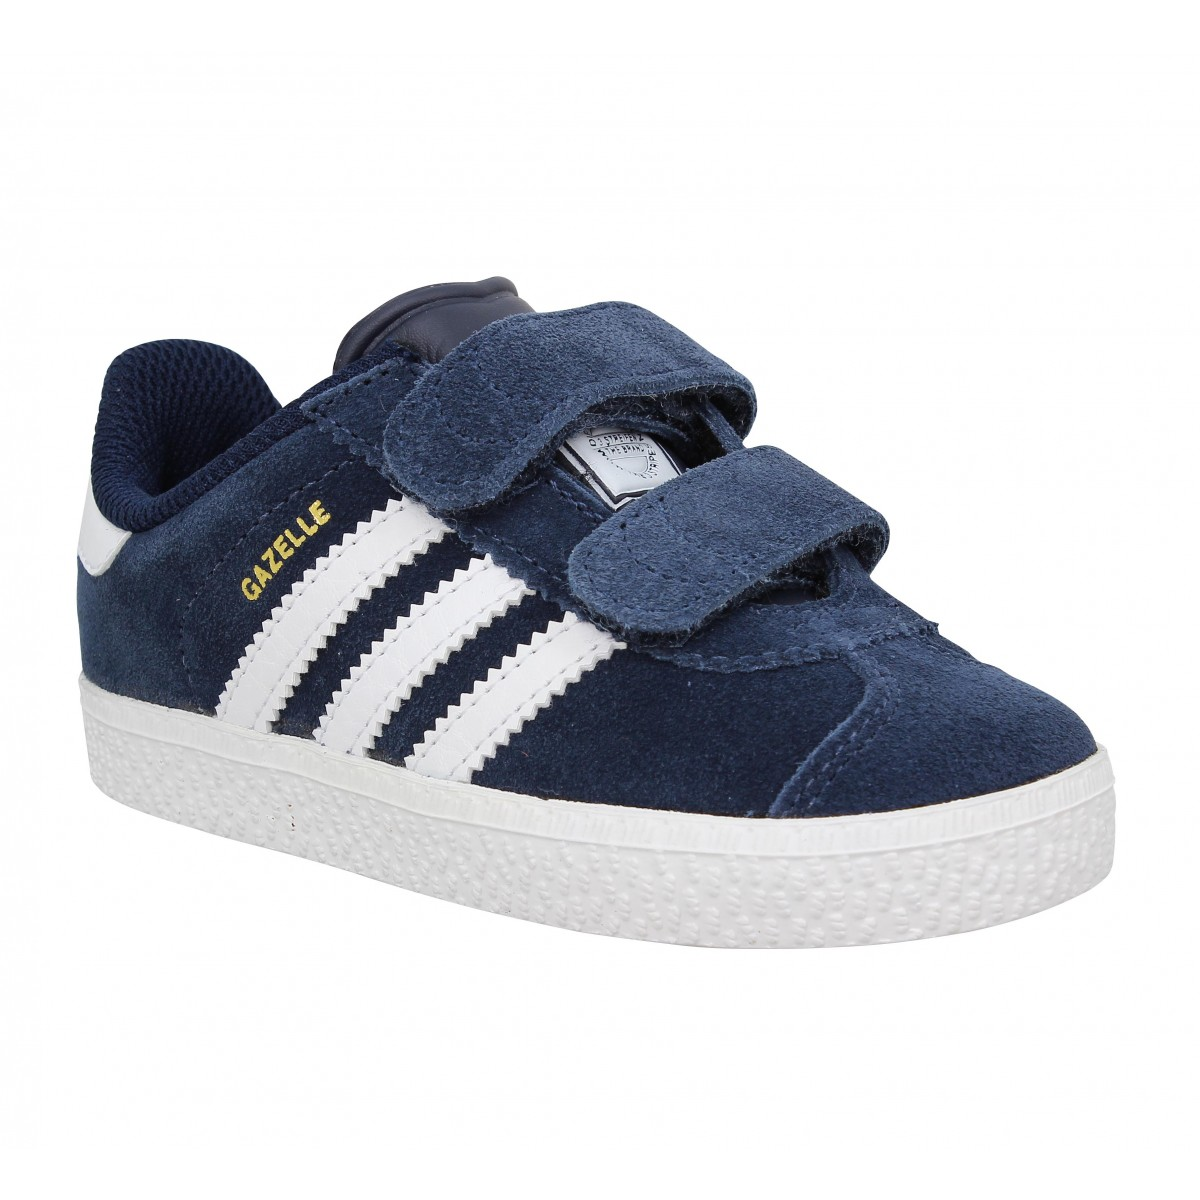 Baskets ADIDAS Gazelle 2 velcro Enfant Navy